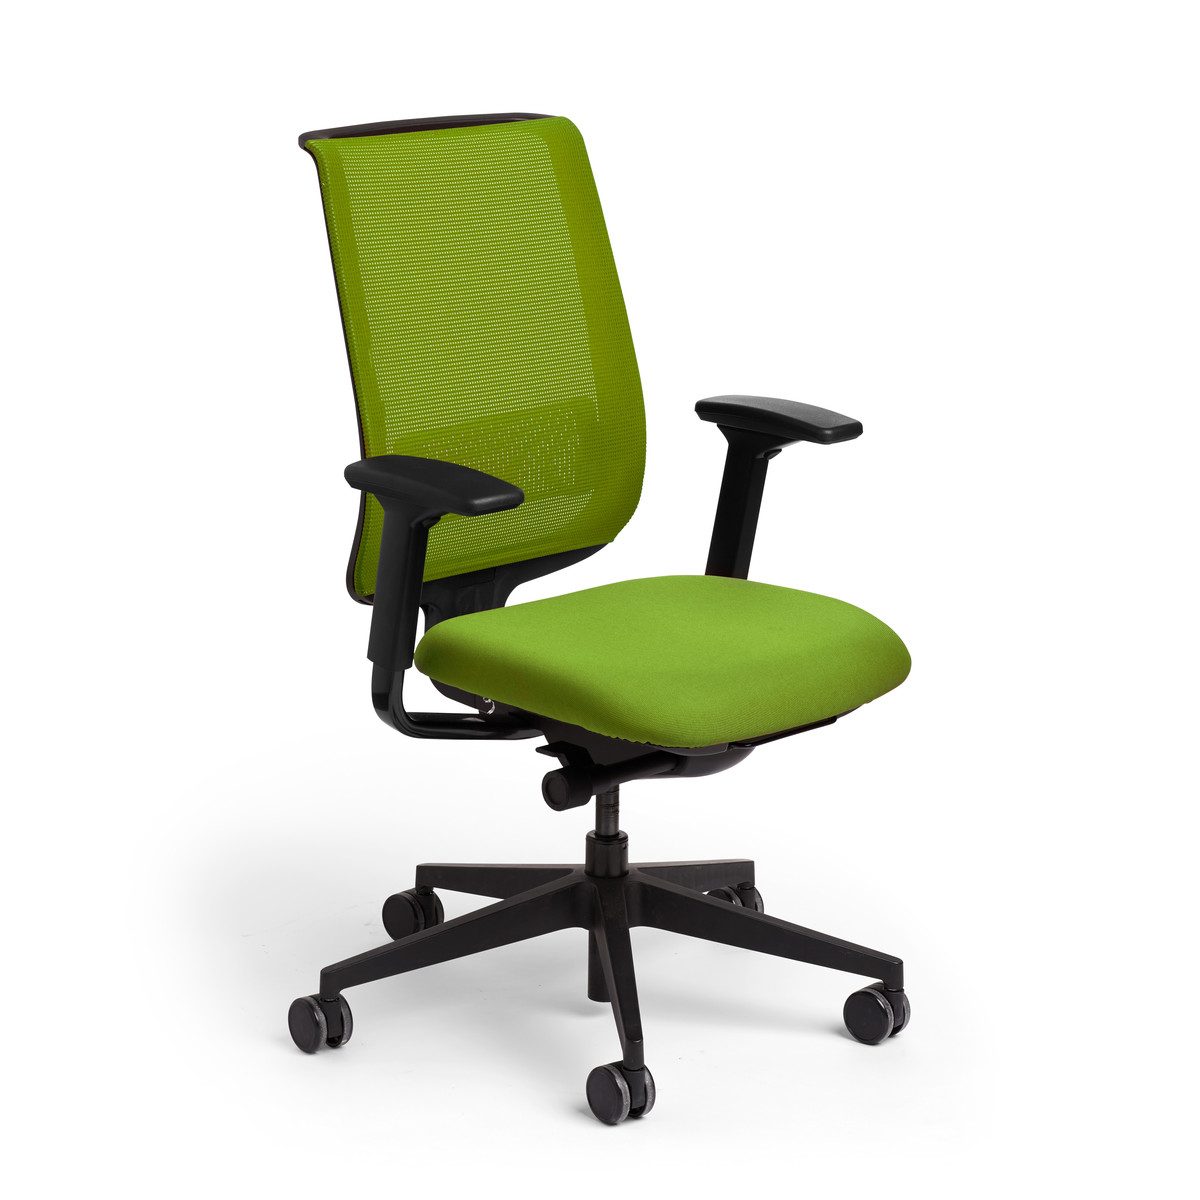 Office Chair With Adjustable Arms Green Reply Task Chair Furniture Poppin